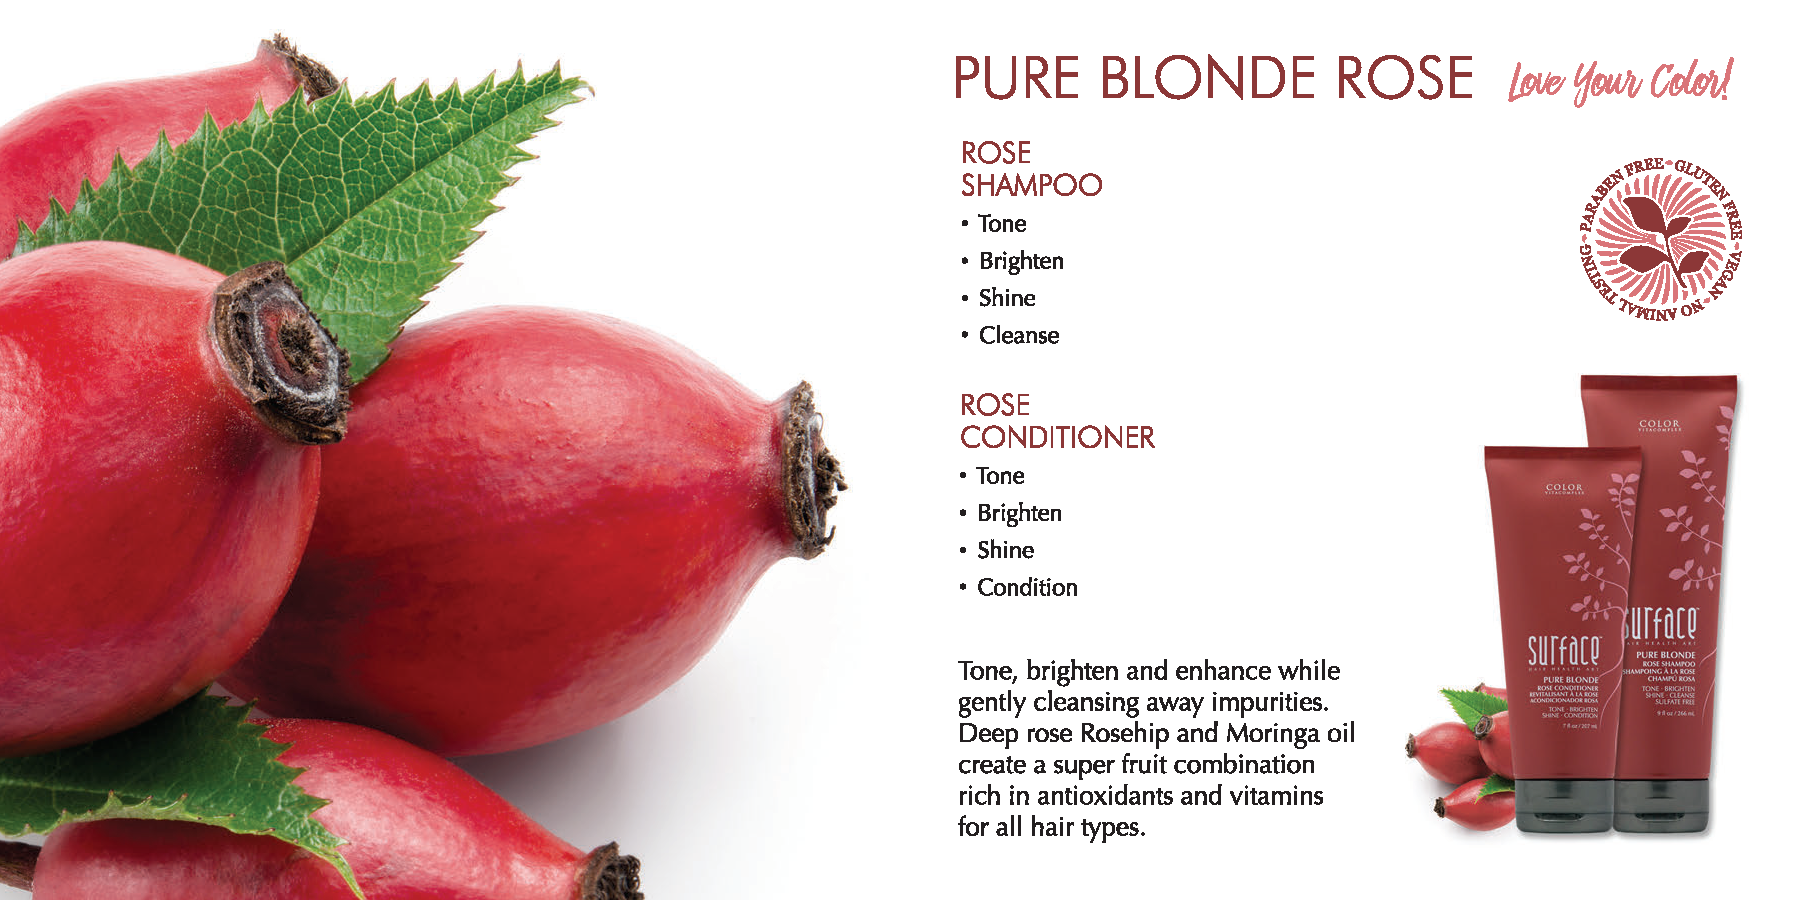 Surface Pure Blonde Rose Haircare Products